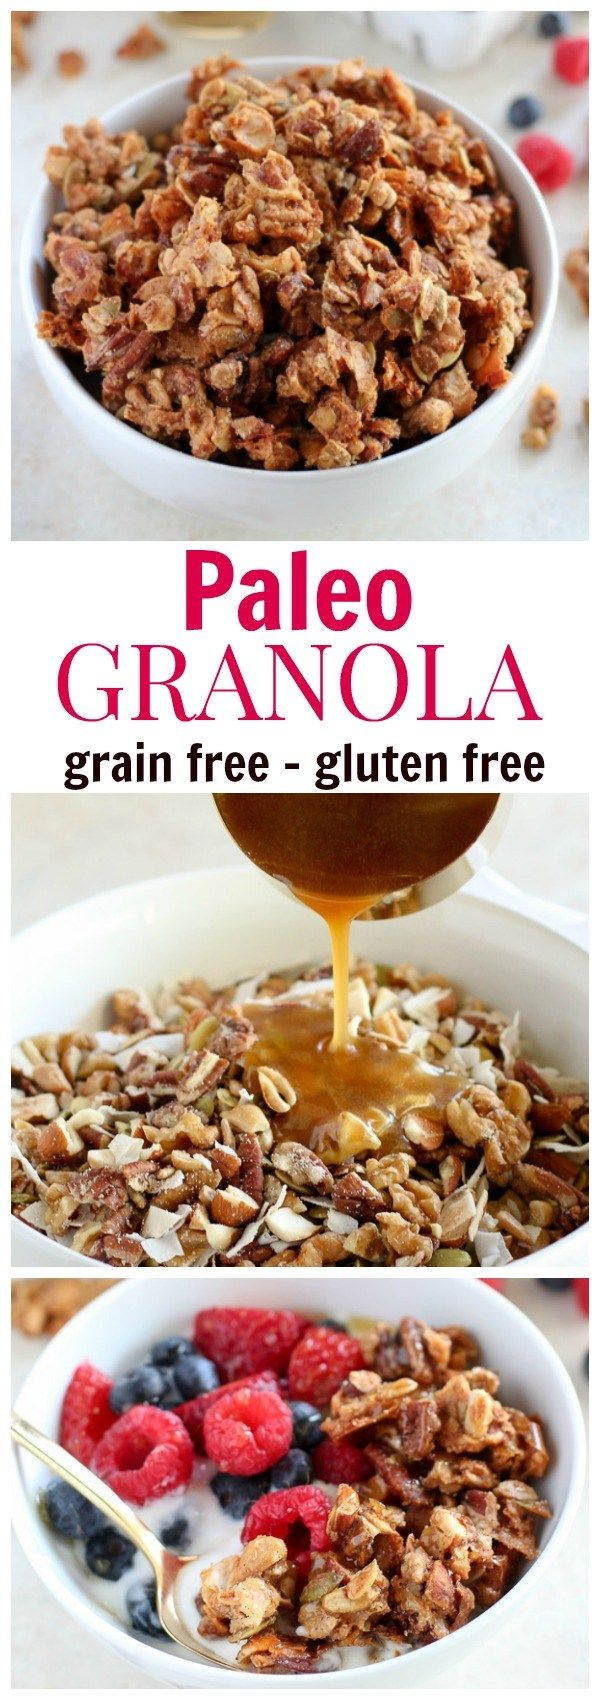 Grain Free Paleo Granola - A low-carb, grain-free Paleo granola filled with nuts, seeds, coconut and honey. Sweet, salty, crunchy and satisfying. You won't be able to stop eating this!(Healthy Low Carb Treat